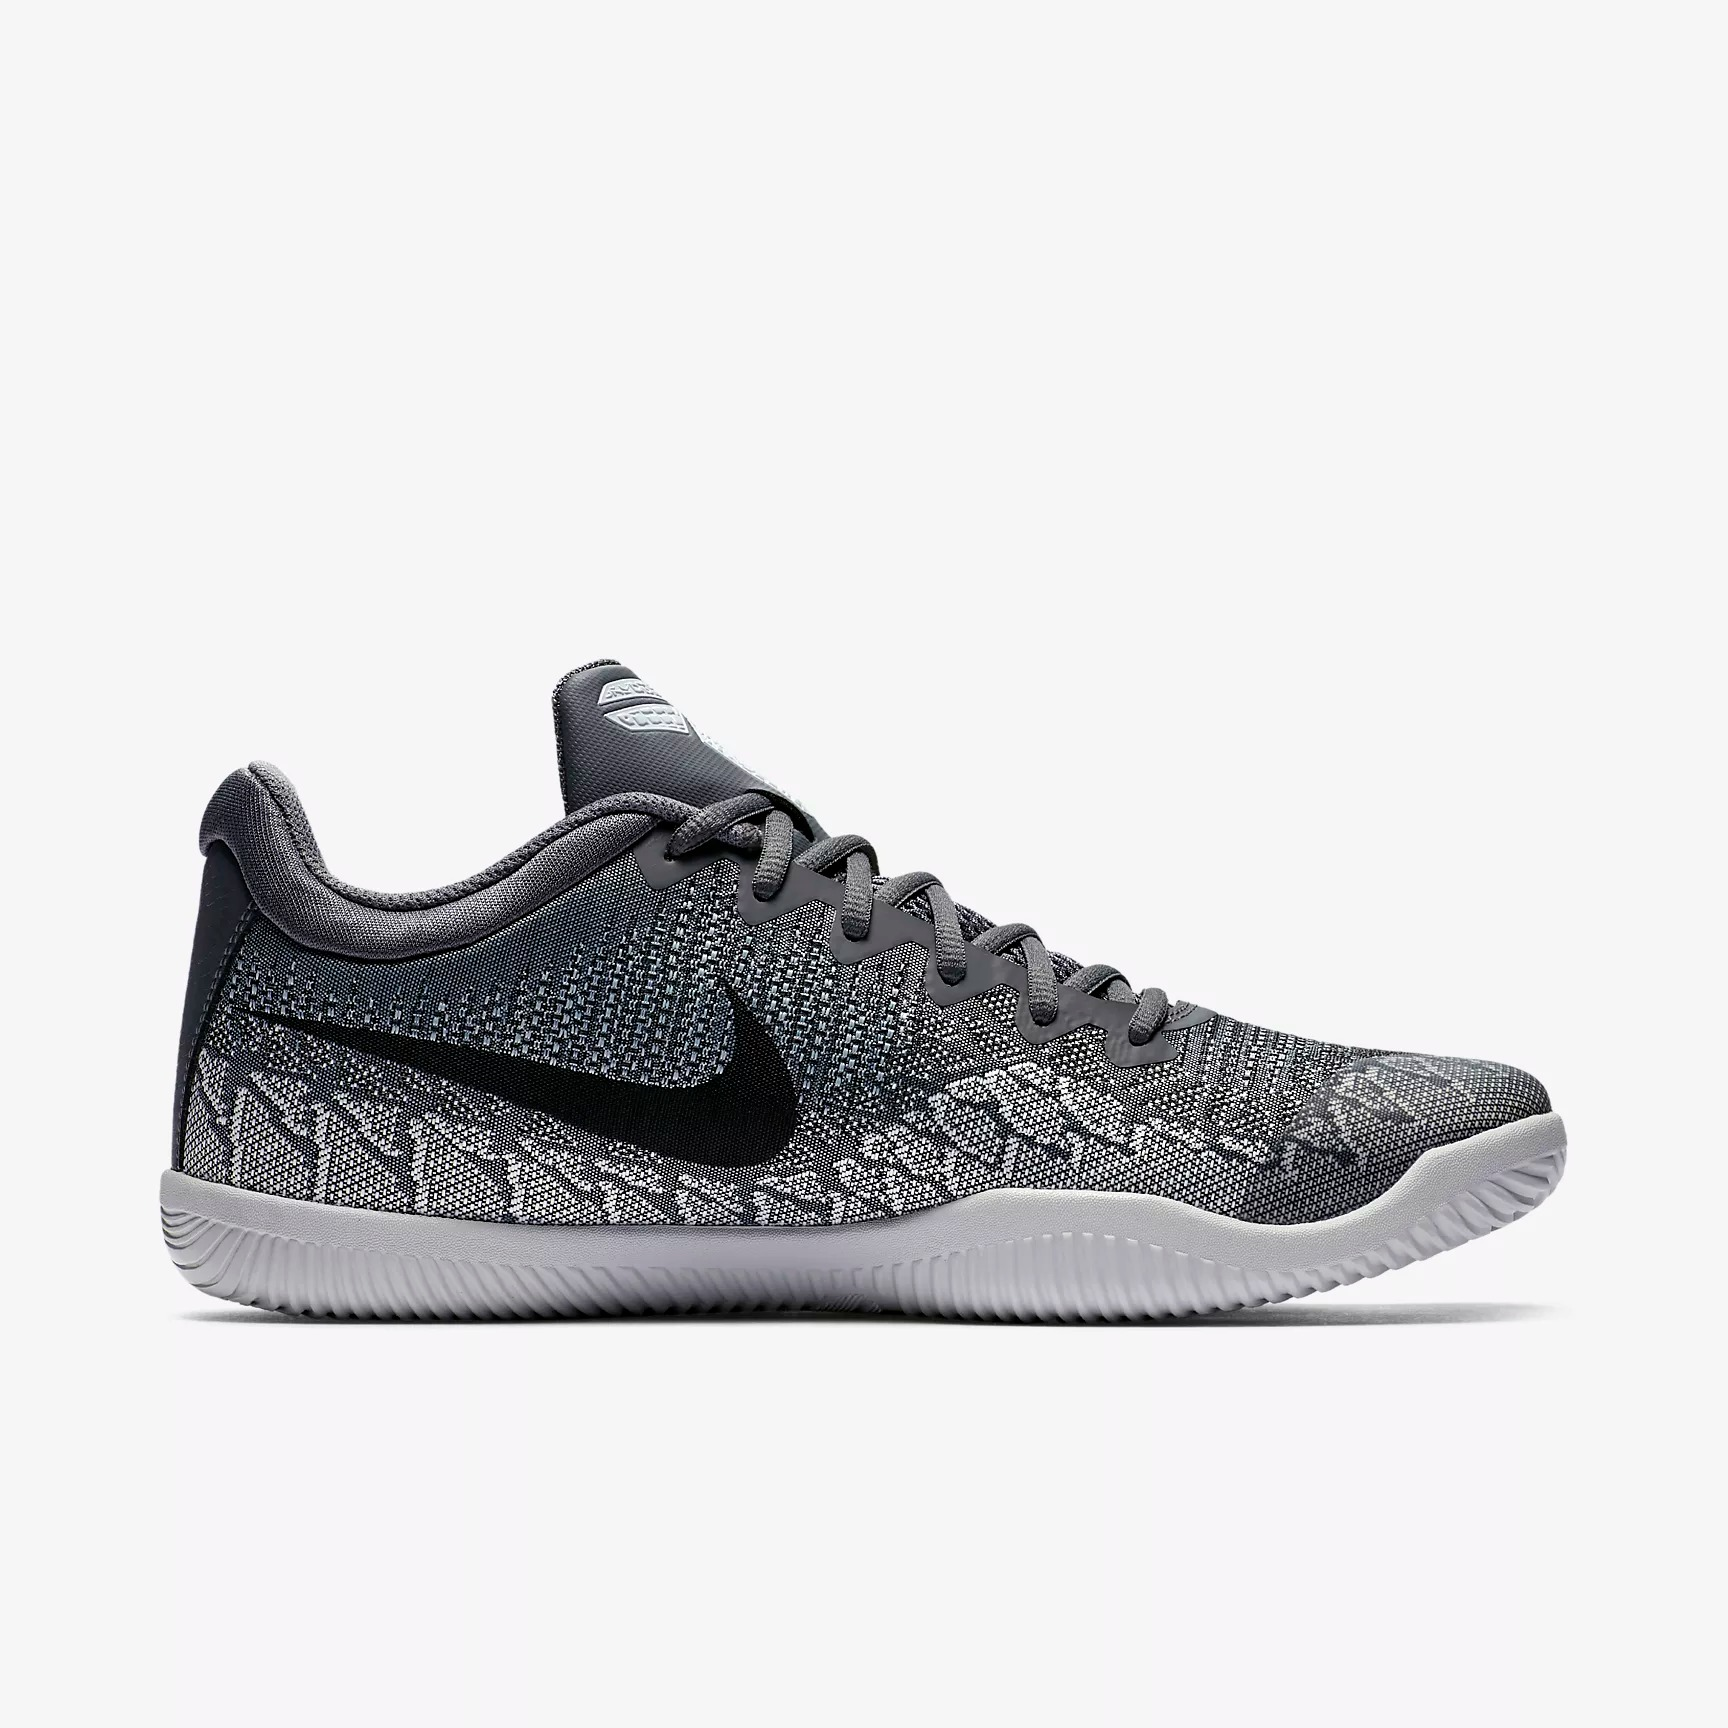 Nike Mamba Rage Basketball Shoes Basketball Shoes Nike